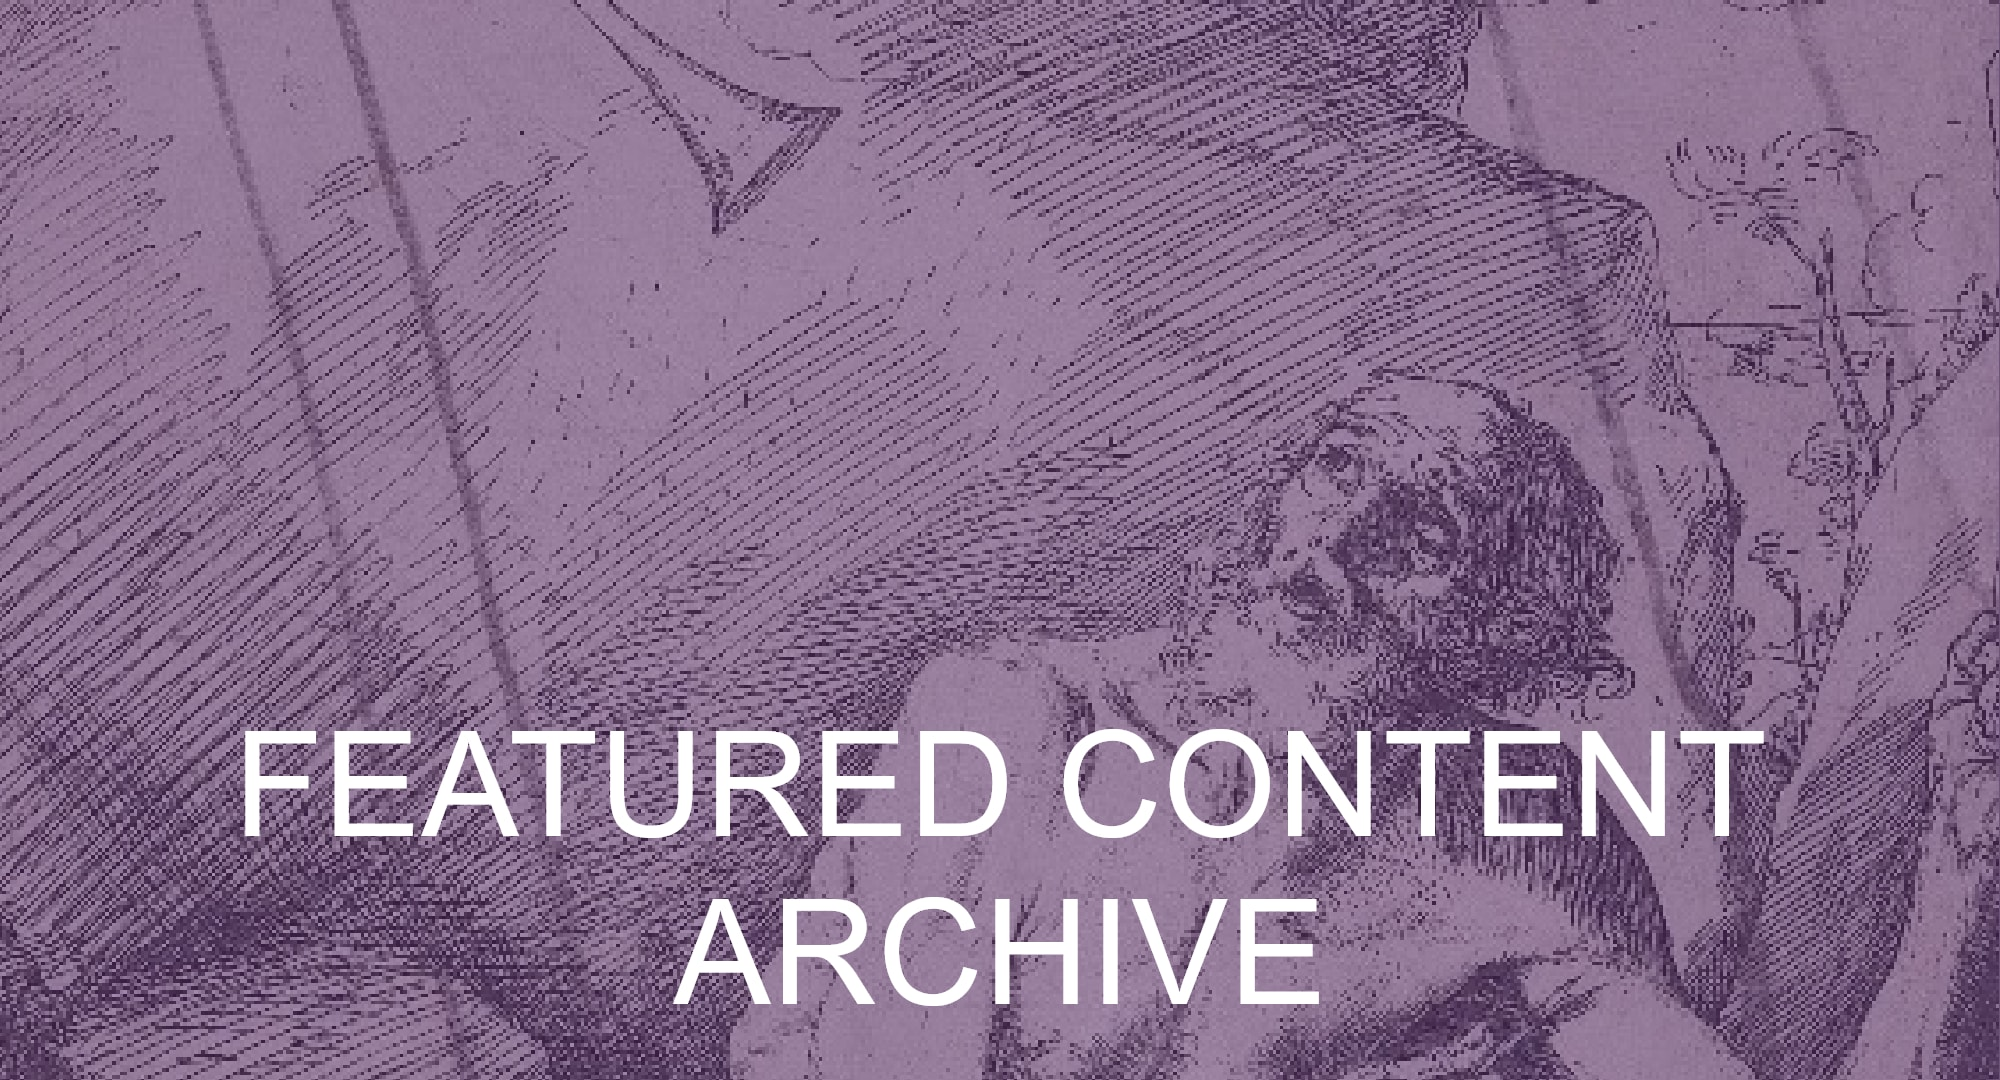 Click here to view the featured content archive